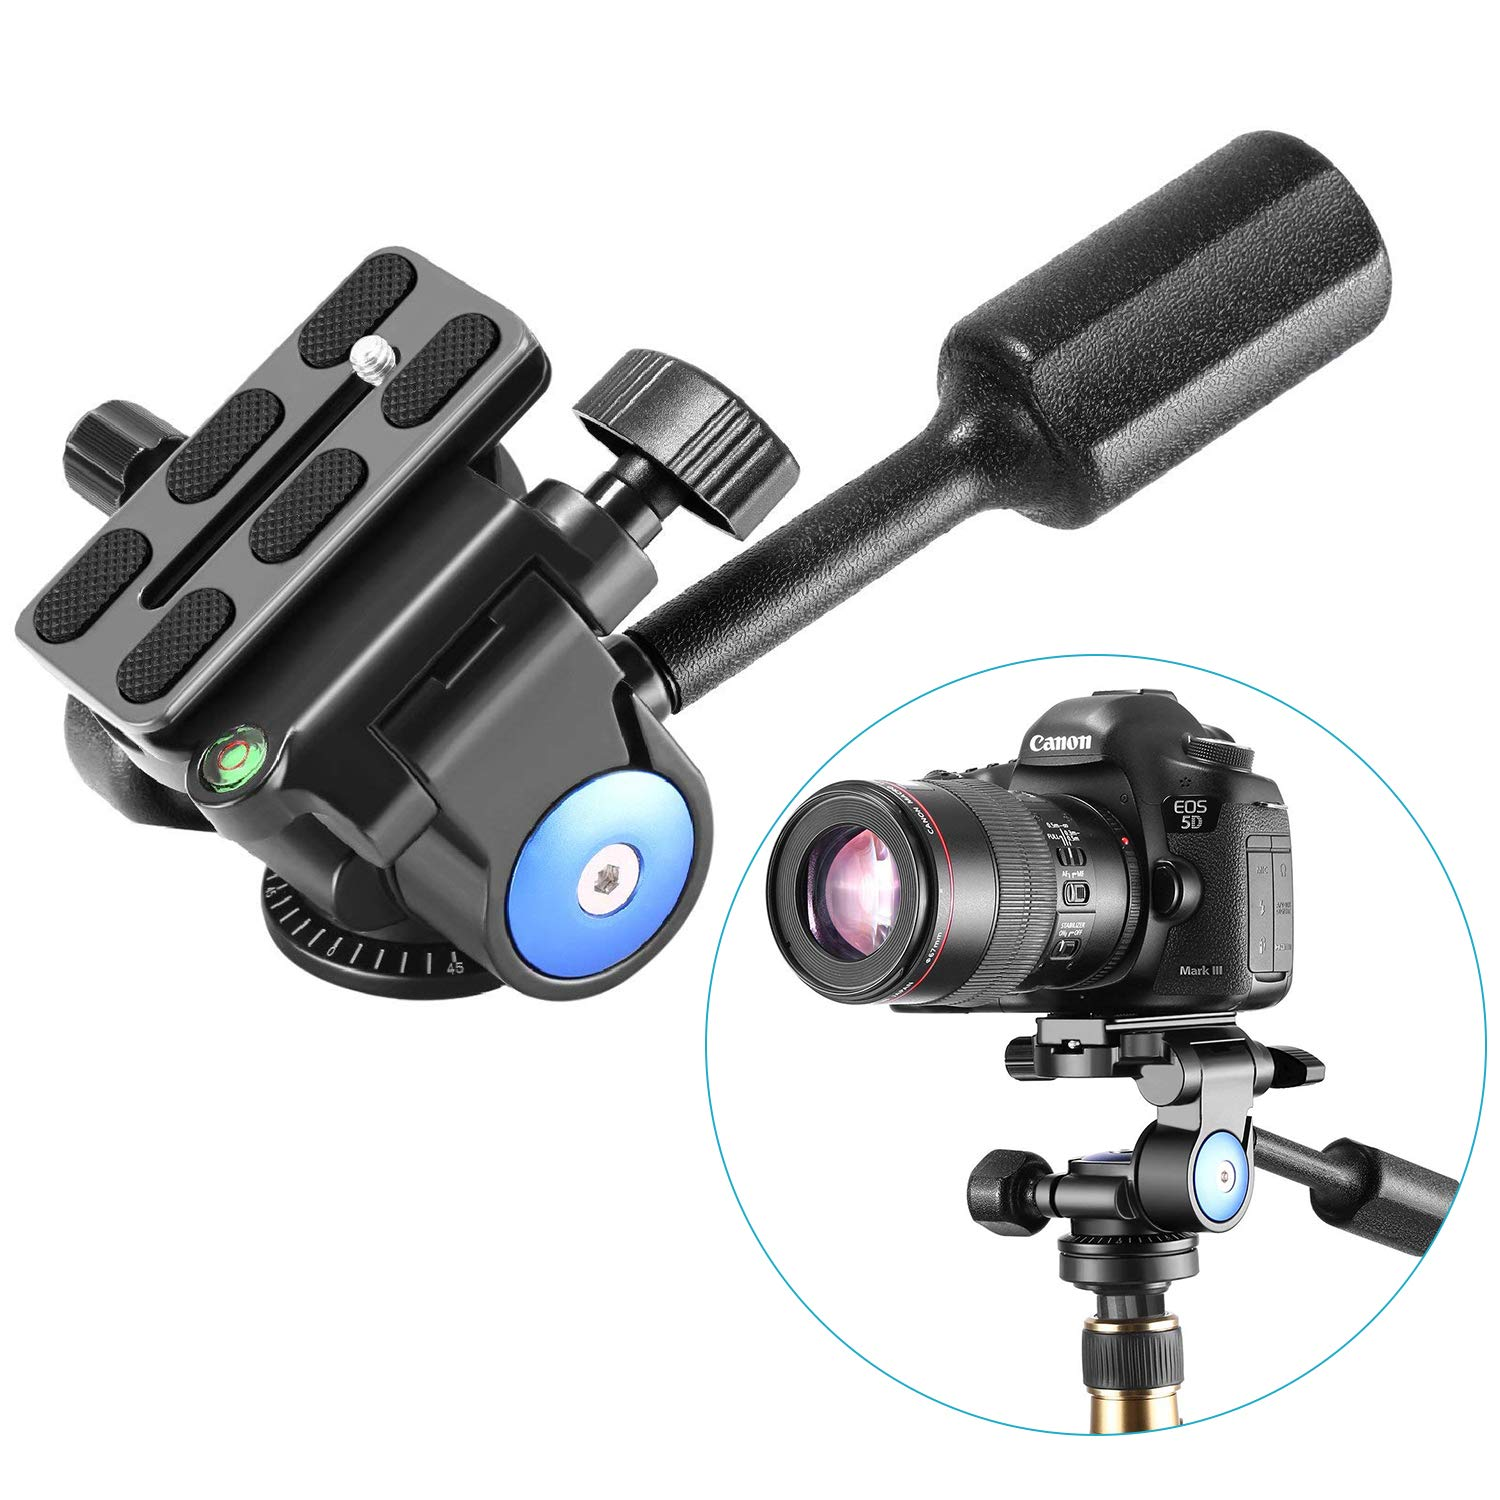 Neewer Camera Tripod Handle Ball Head with 1/4'' QR Plate,3-Dimensional 360 Degree Rotation for Tripod,Slider,DSLR Camera,Camcorder,Load up to 22lbs by Neewer